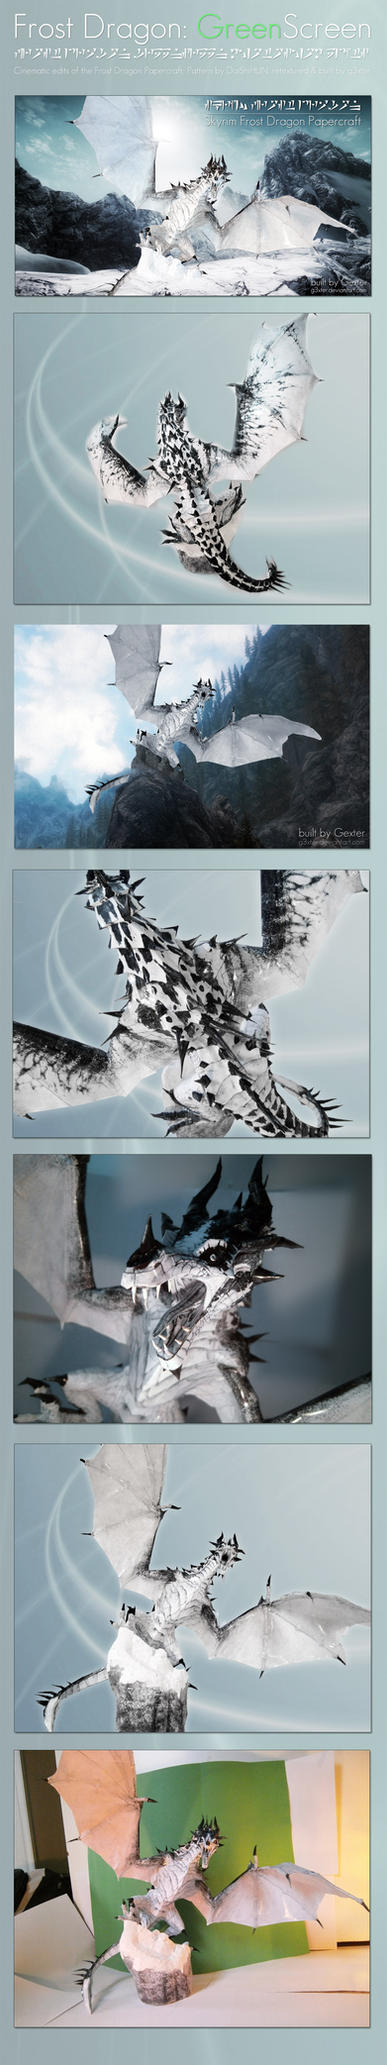 Skyrim Frost Dragon Papercraft - Greenscreen comp. by g3xter